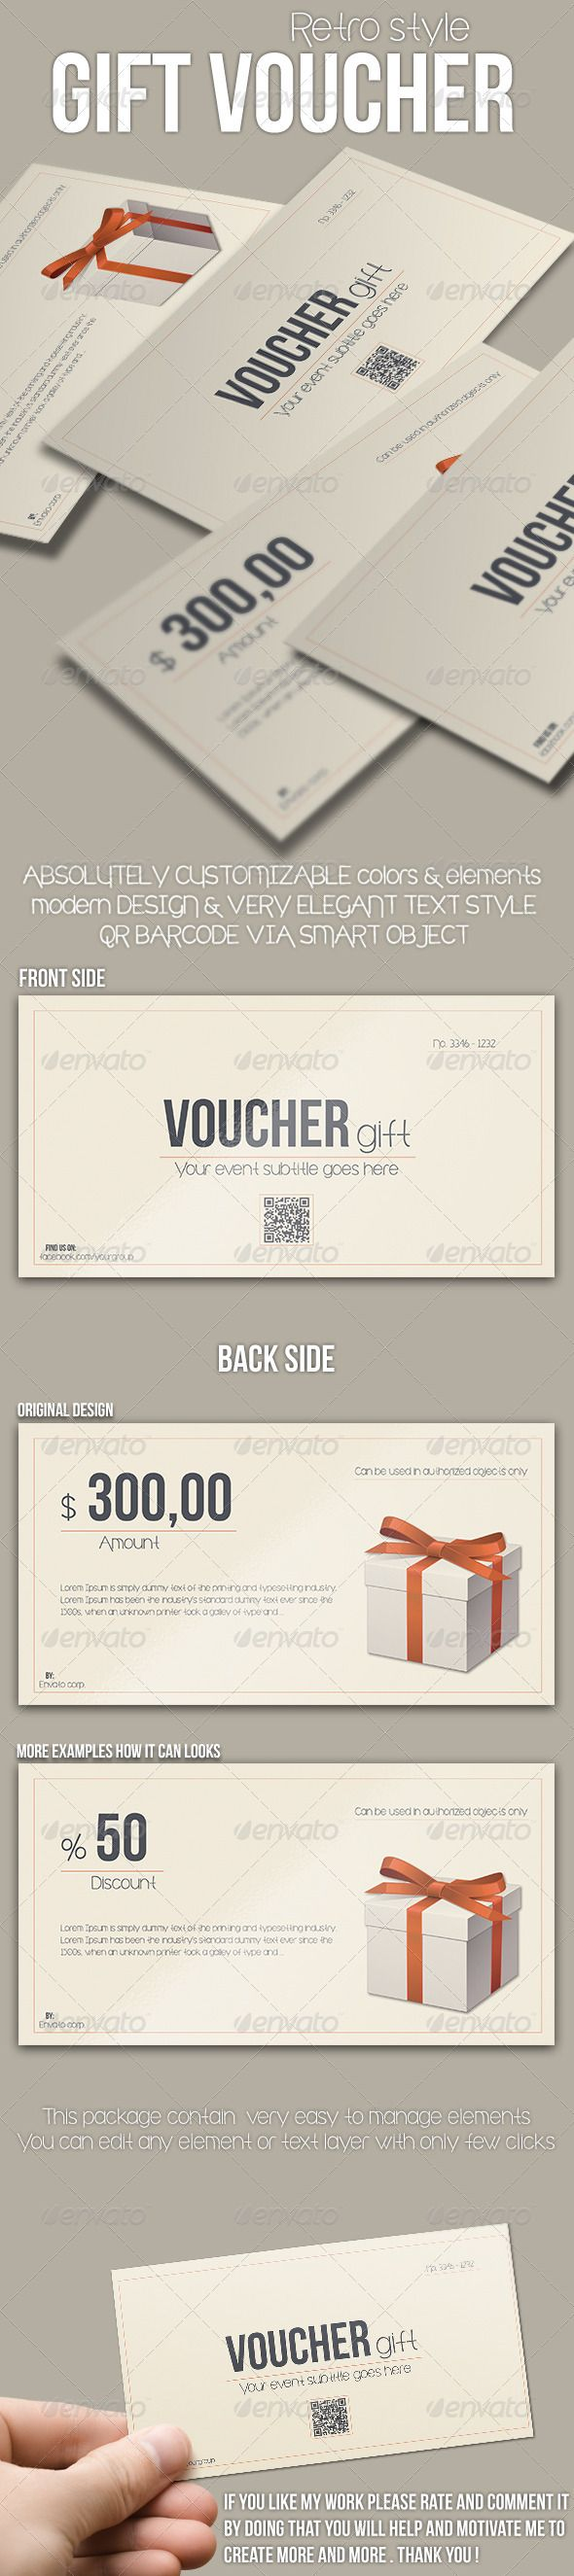 42 best Voucher Inspiration images on Pinterest | Gift cards, Gift ...